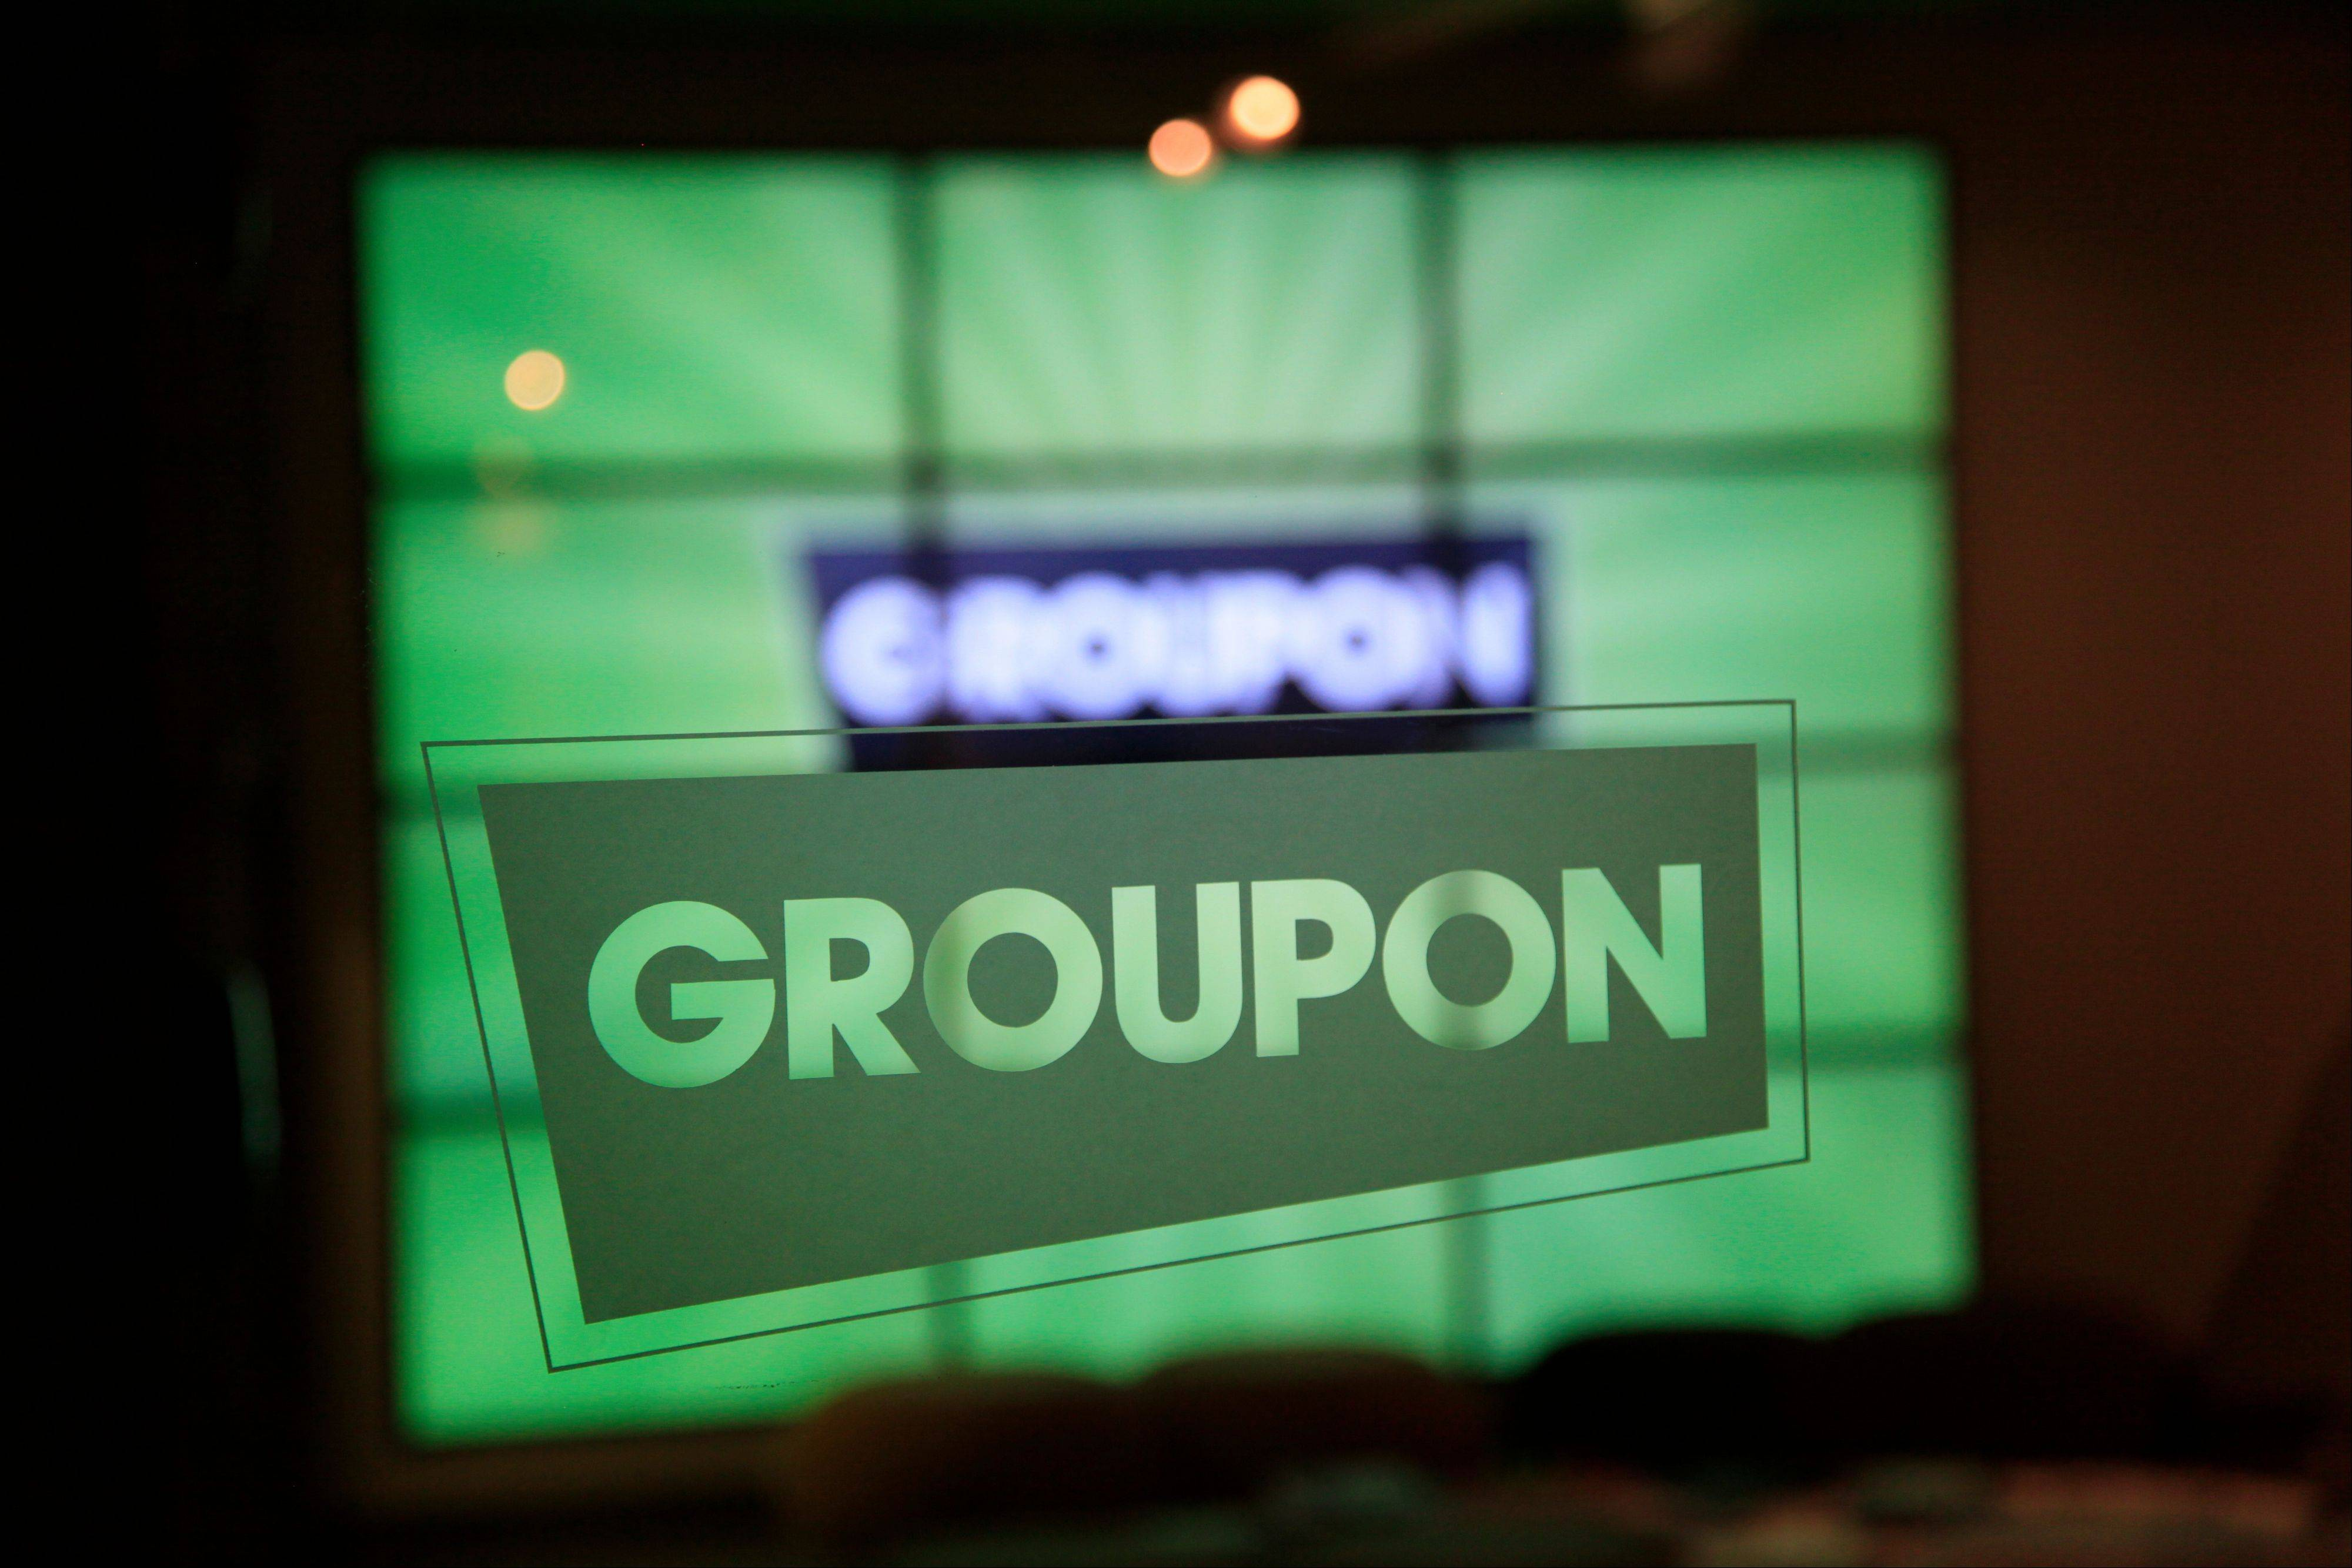 Chicao-based Groupon�s stock hit its lowest level Wednesday since the online deals company went public last November amid concerns about traffic to its website and its exposure to Europe�s weak economy.